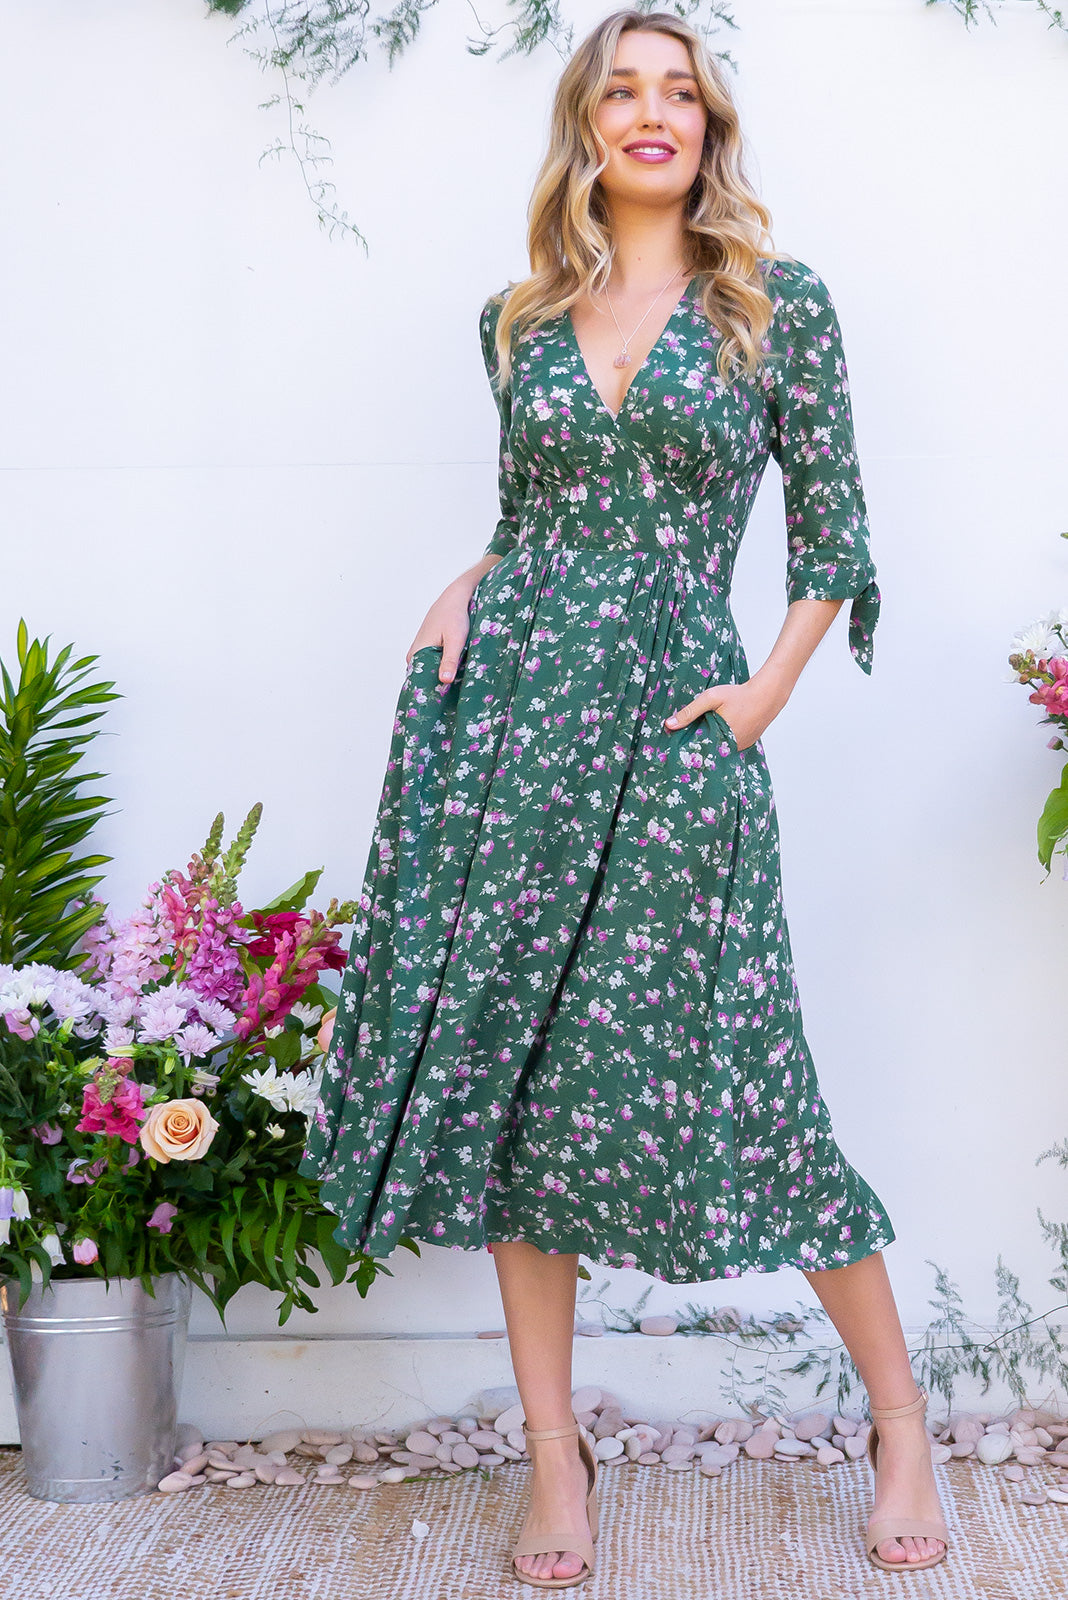 Henrietta Tahalia Green Midi Dress - Women's emerald 100% rayon midi dress with pockets. Soft, ditzy floral print inspired by vintage fashions. Fitted waist and flowing skirt. Retro style. Perfect wardrobe staple. Great for day to day, night out, date night etc. Designed in Brisbane Australia